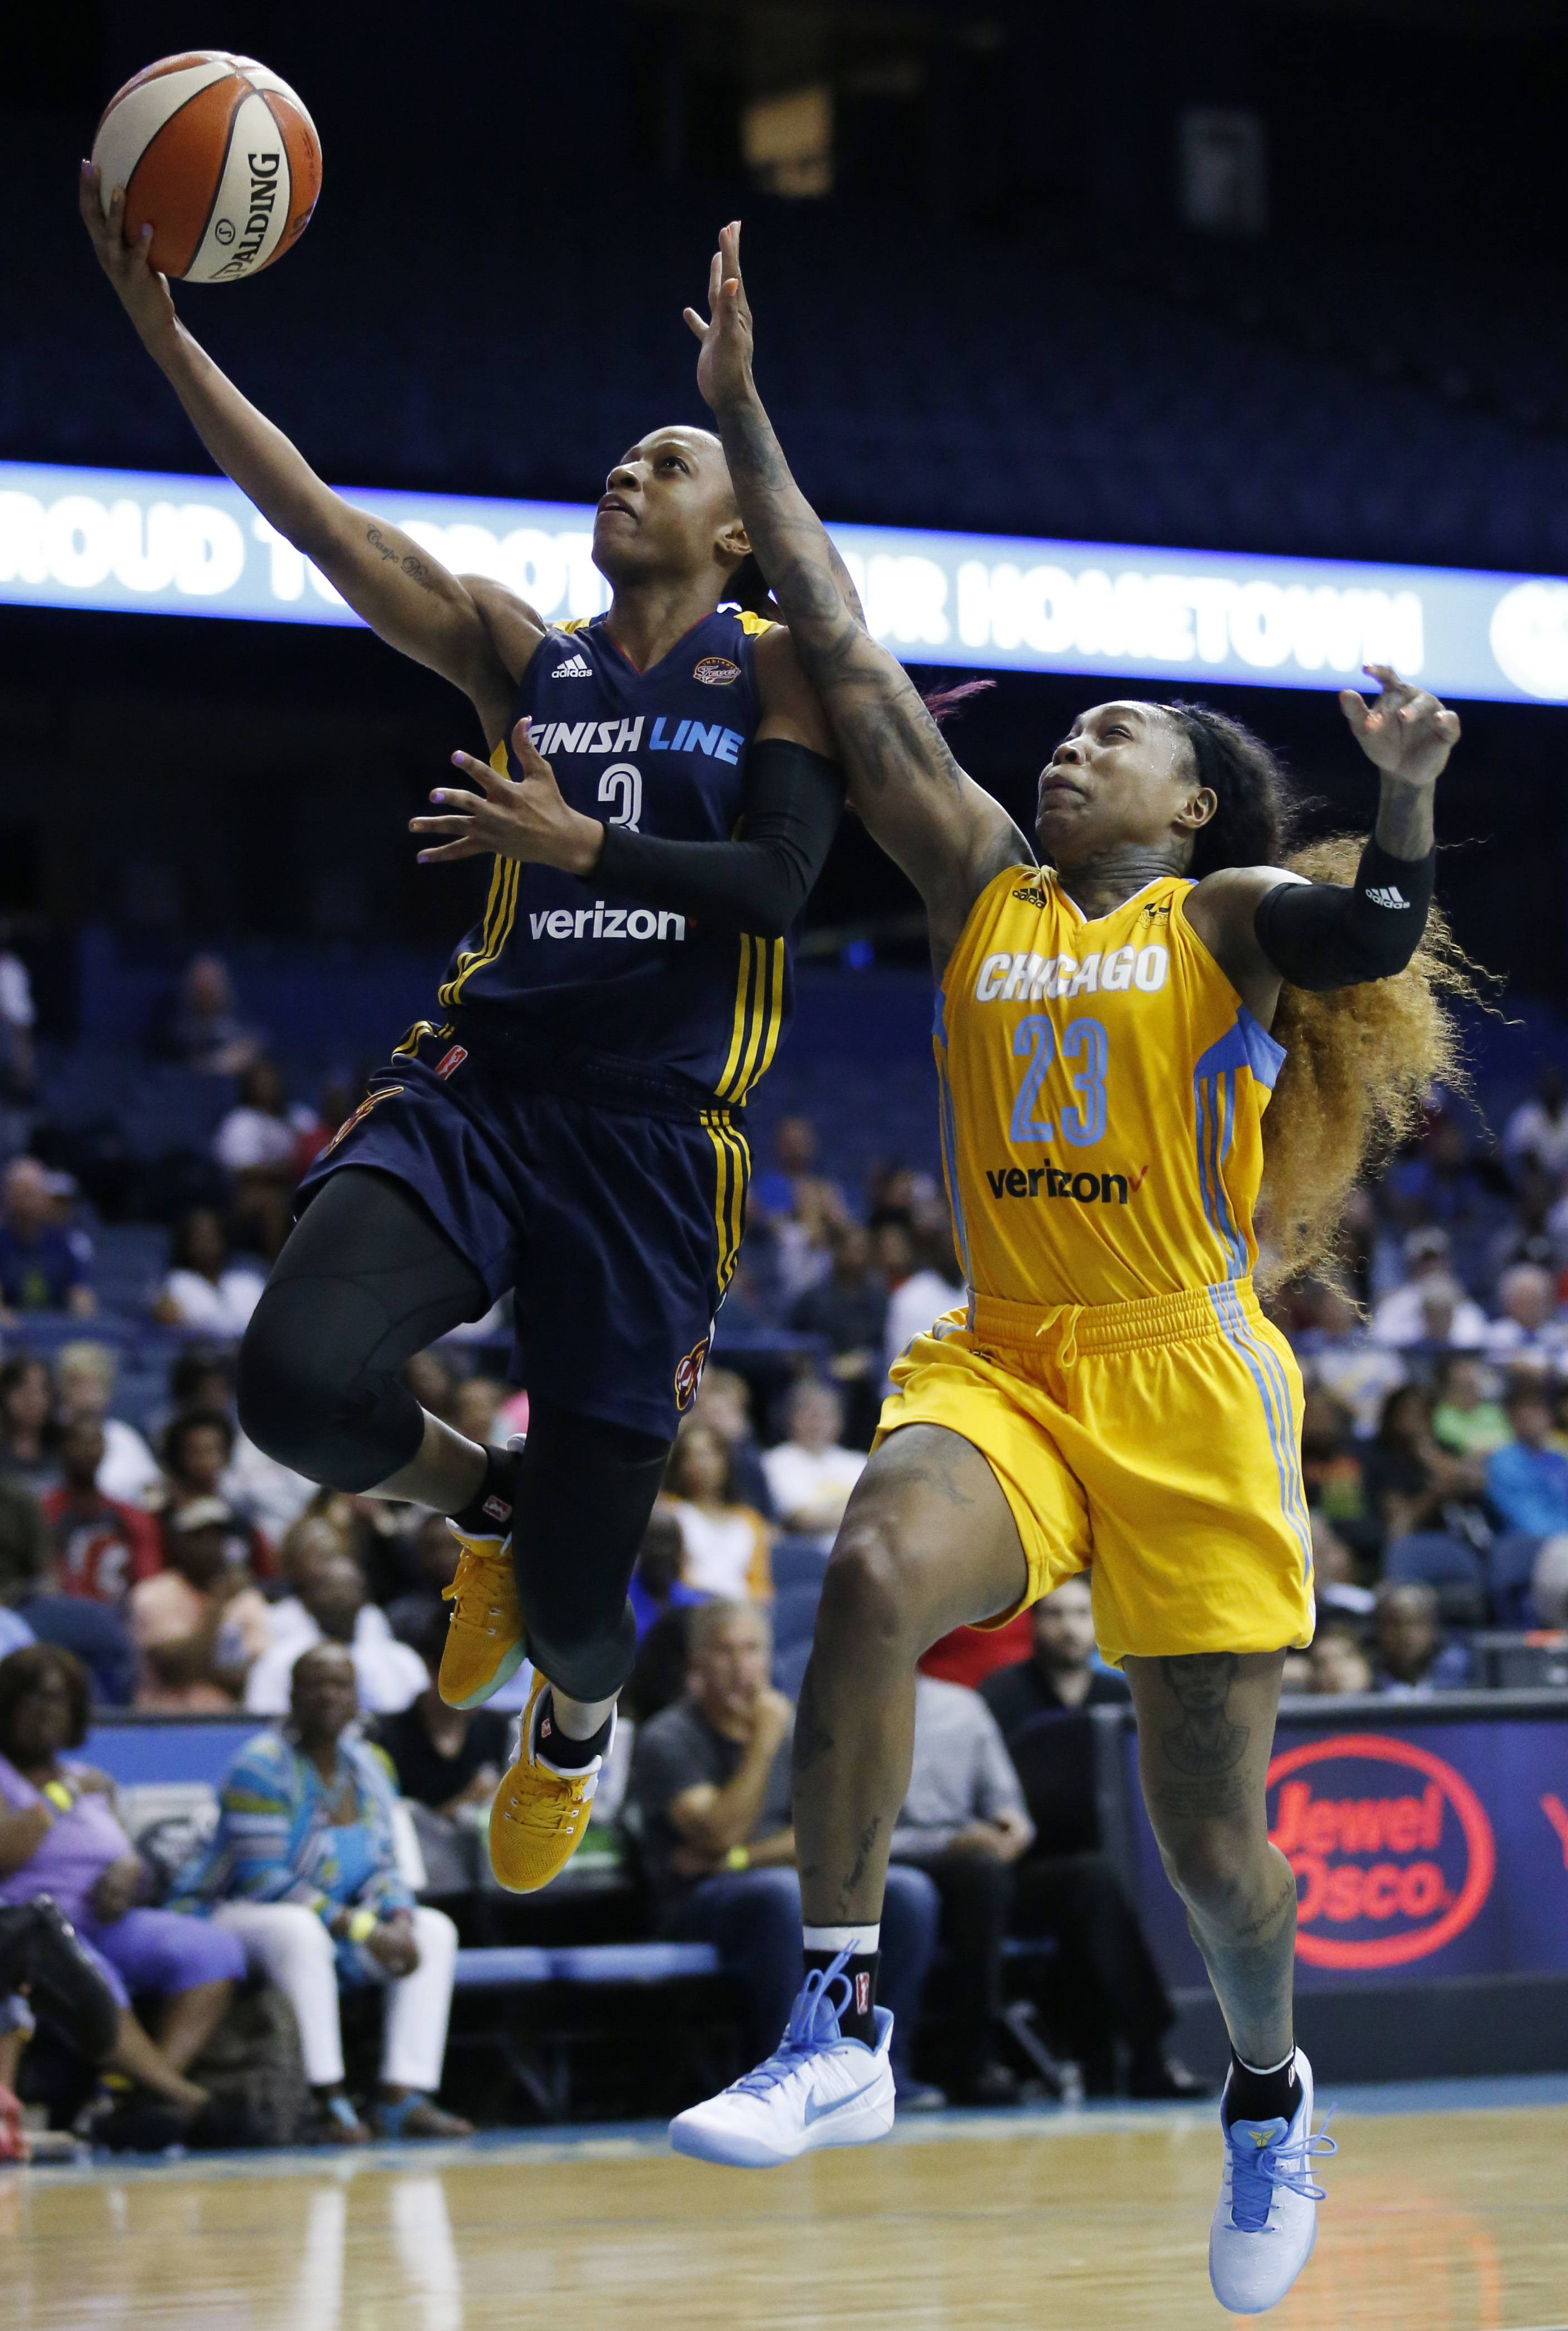 The Chicago Sky is nearly halfway through its 34-game schedule. At 3-12, there is plenty of room for improvement. The time is now to dig deep